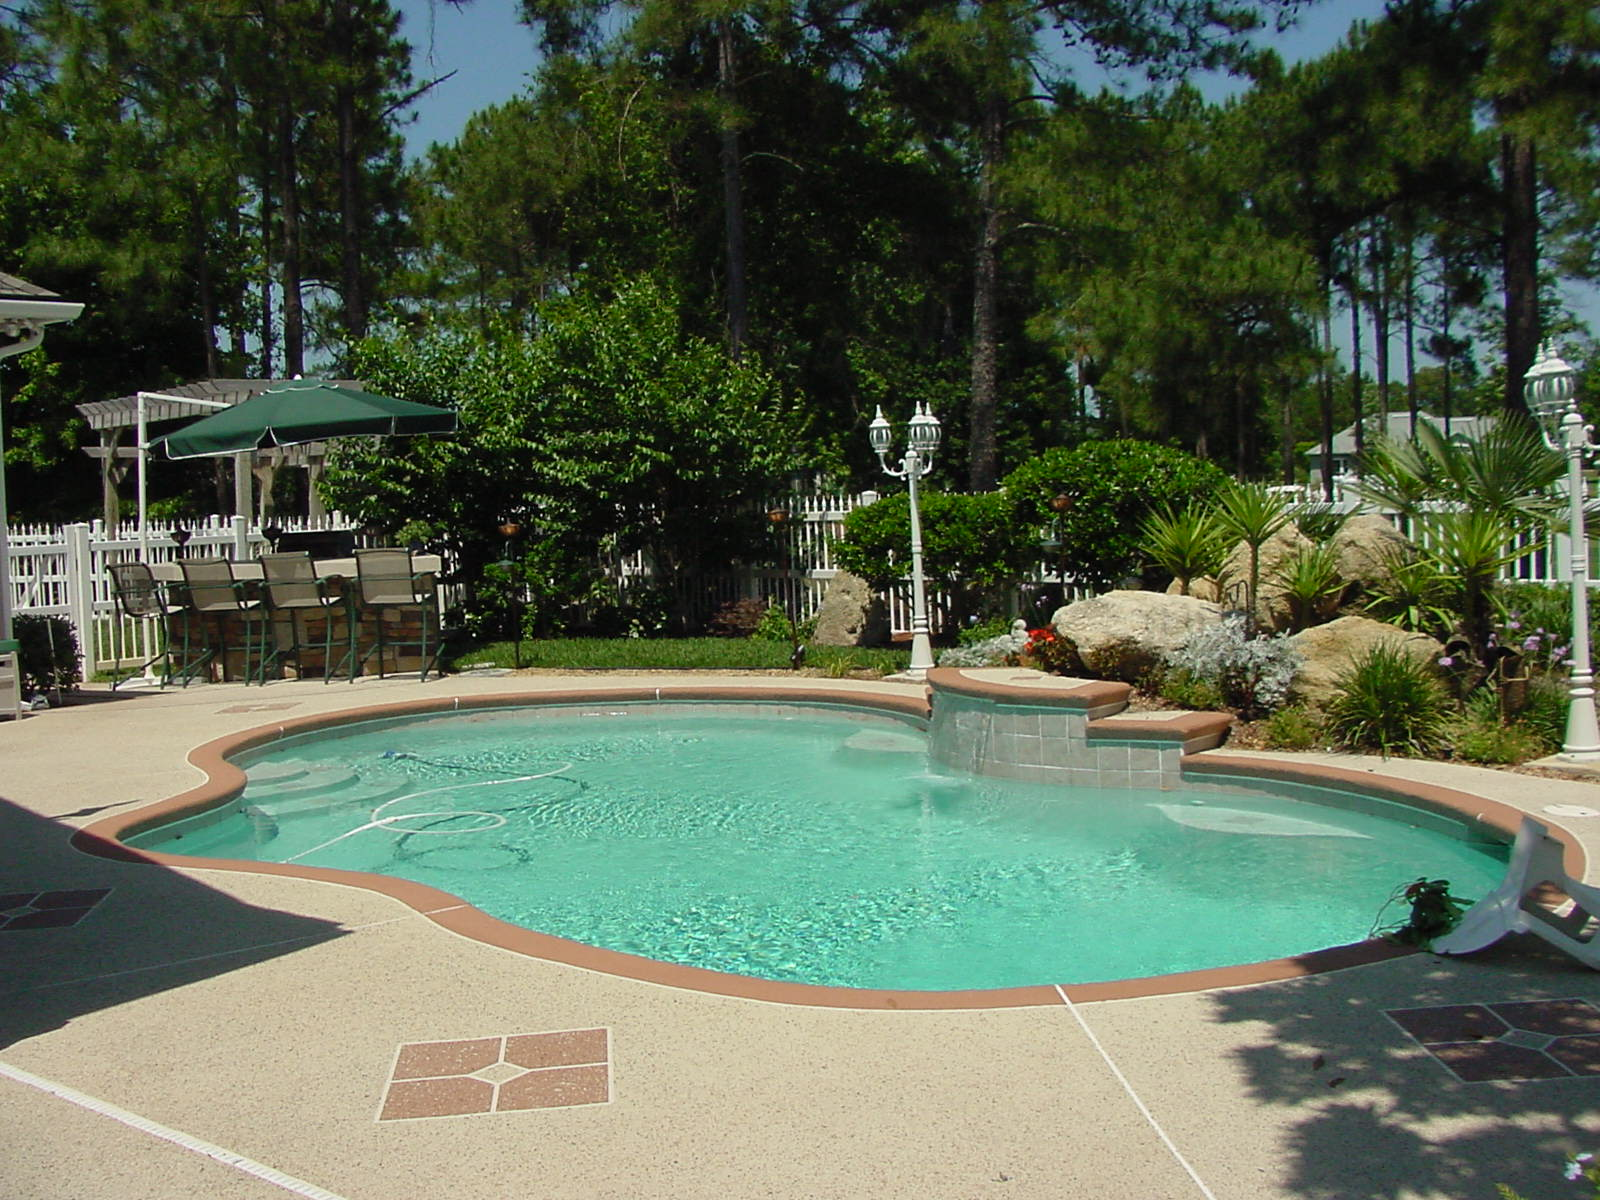 Advantages Of A Pool Fence Vs Screened In Enclosure Best Fence Rail Of Florida